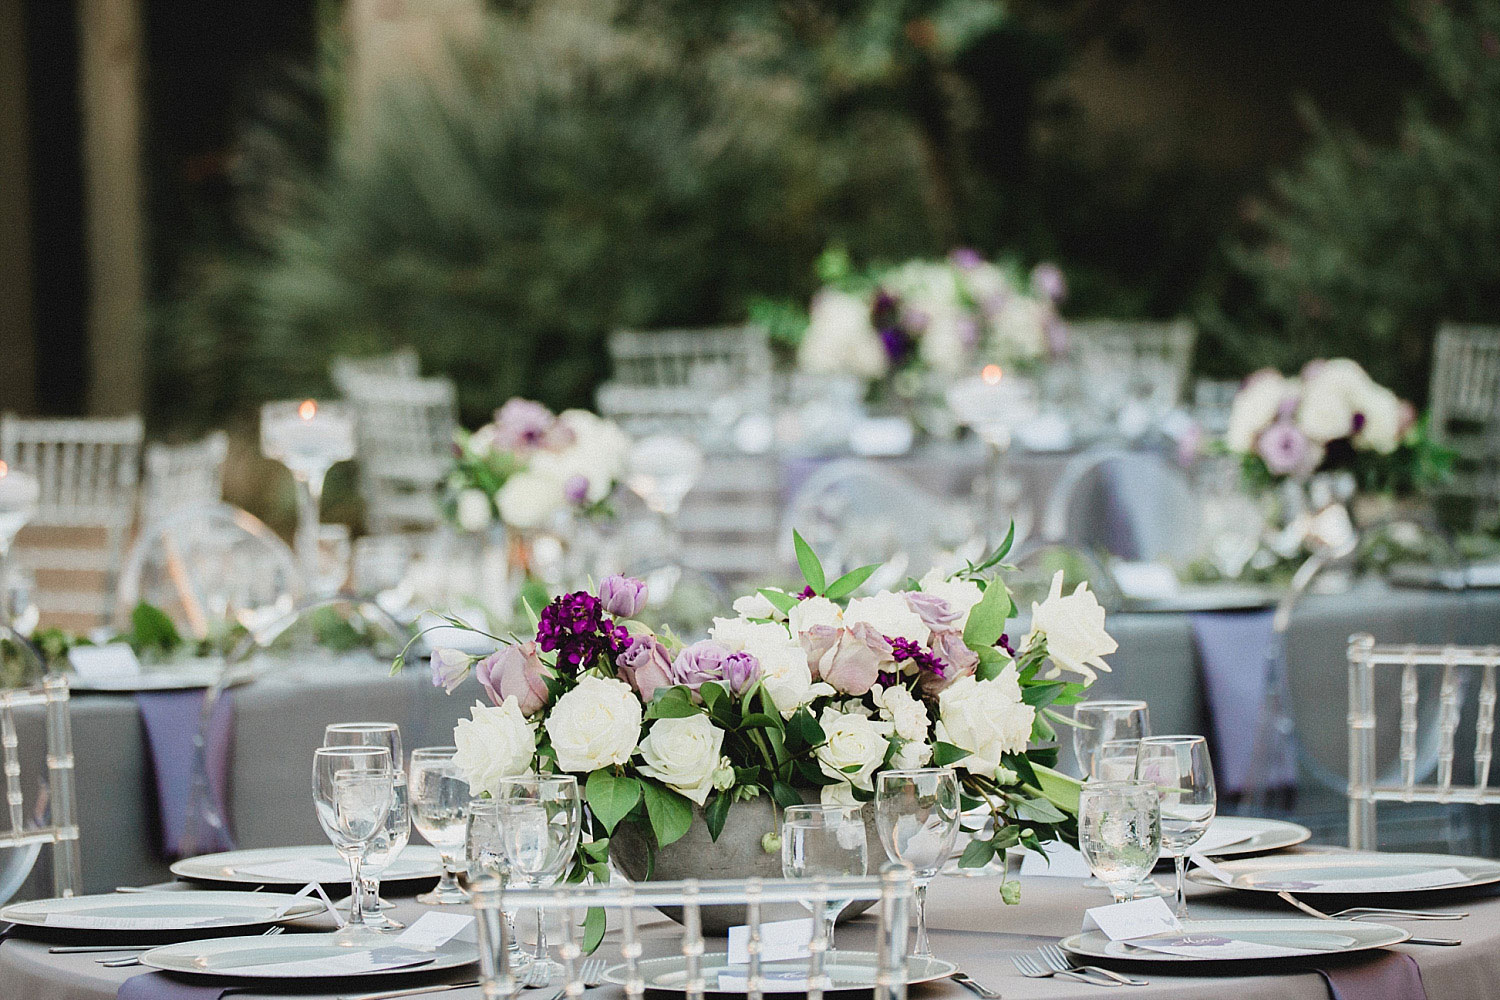 809 at Vickery wedding purple and lavender flowers in concrete boat vases and clear chairs